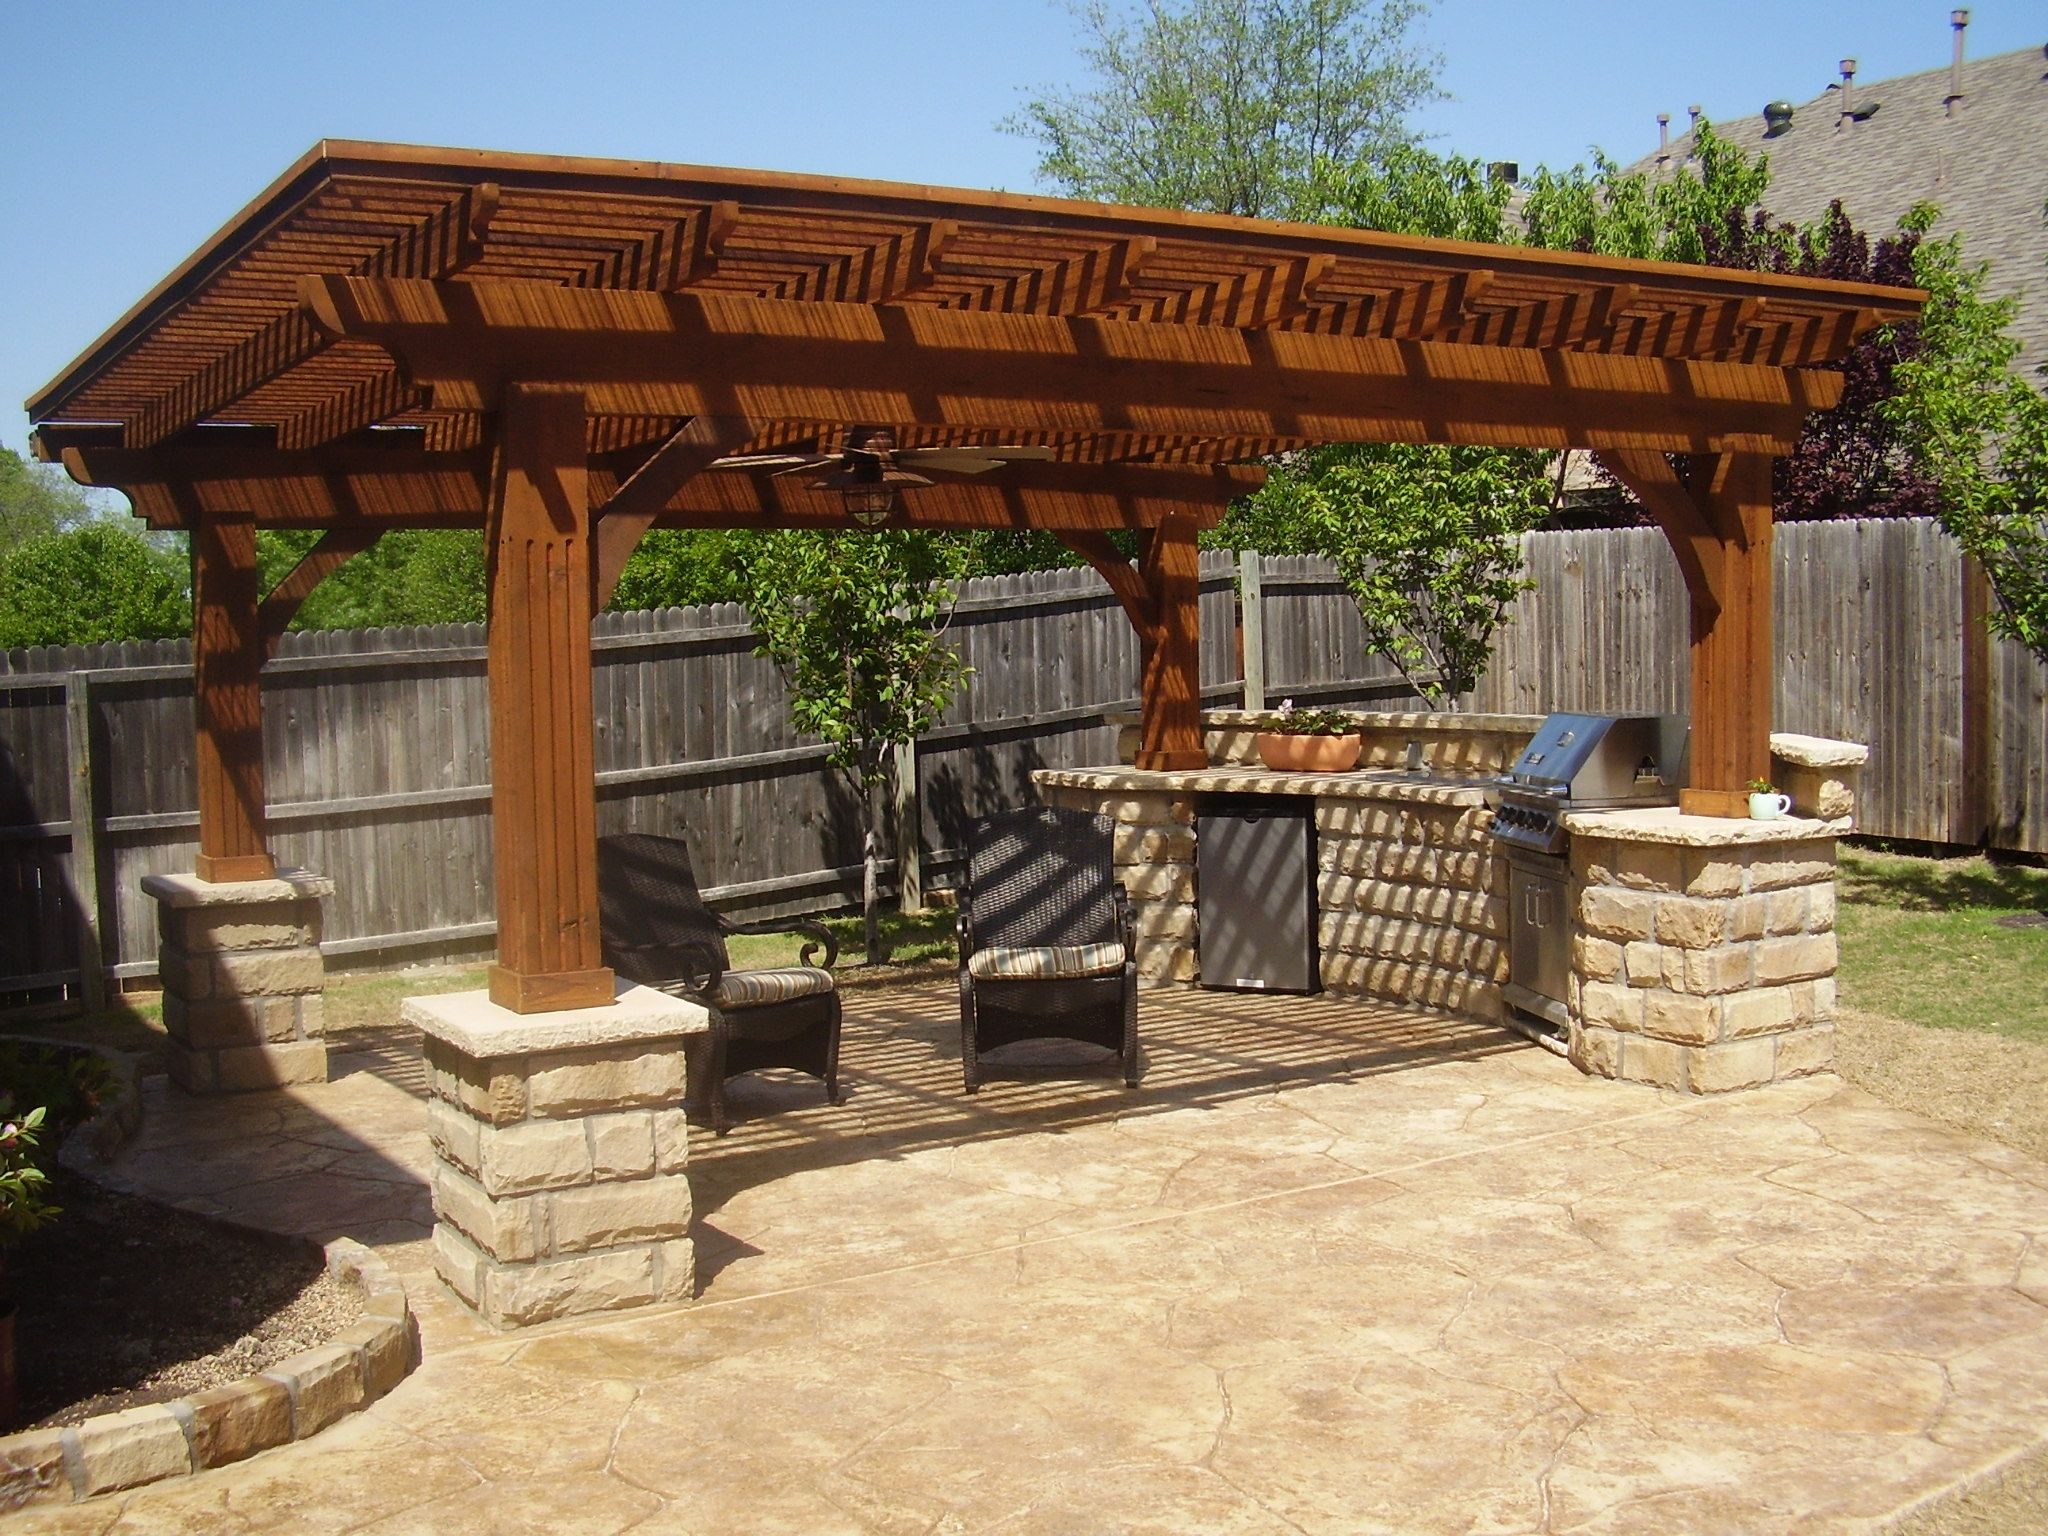 Backyard Patio Design Ideas backyard stone patio ideas 20 rock garden ideas that will put your backyard on the map Wichita Outdoor Kitchens Patio Ideasoutdoor